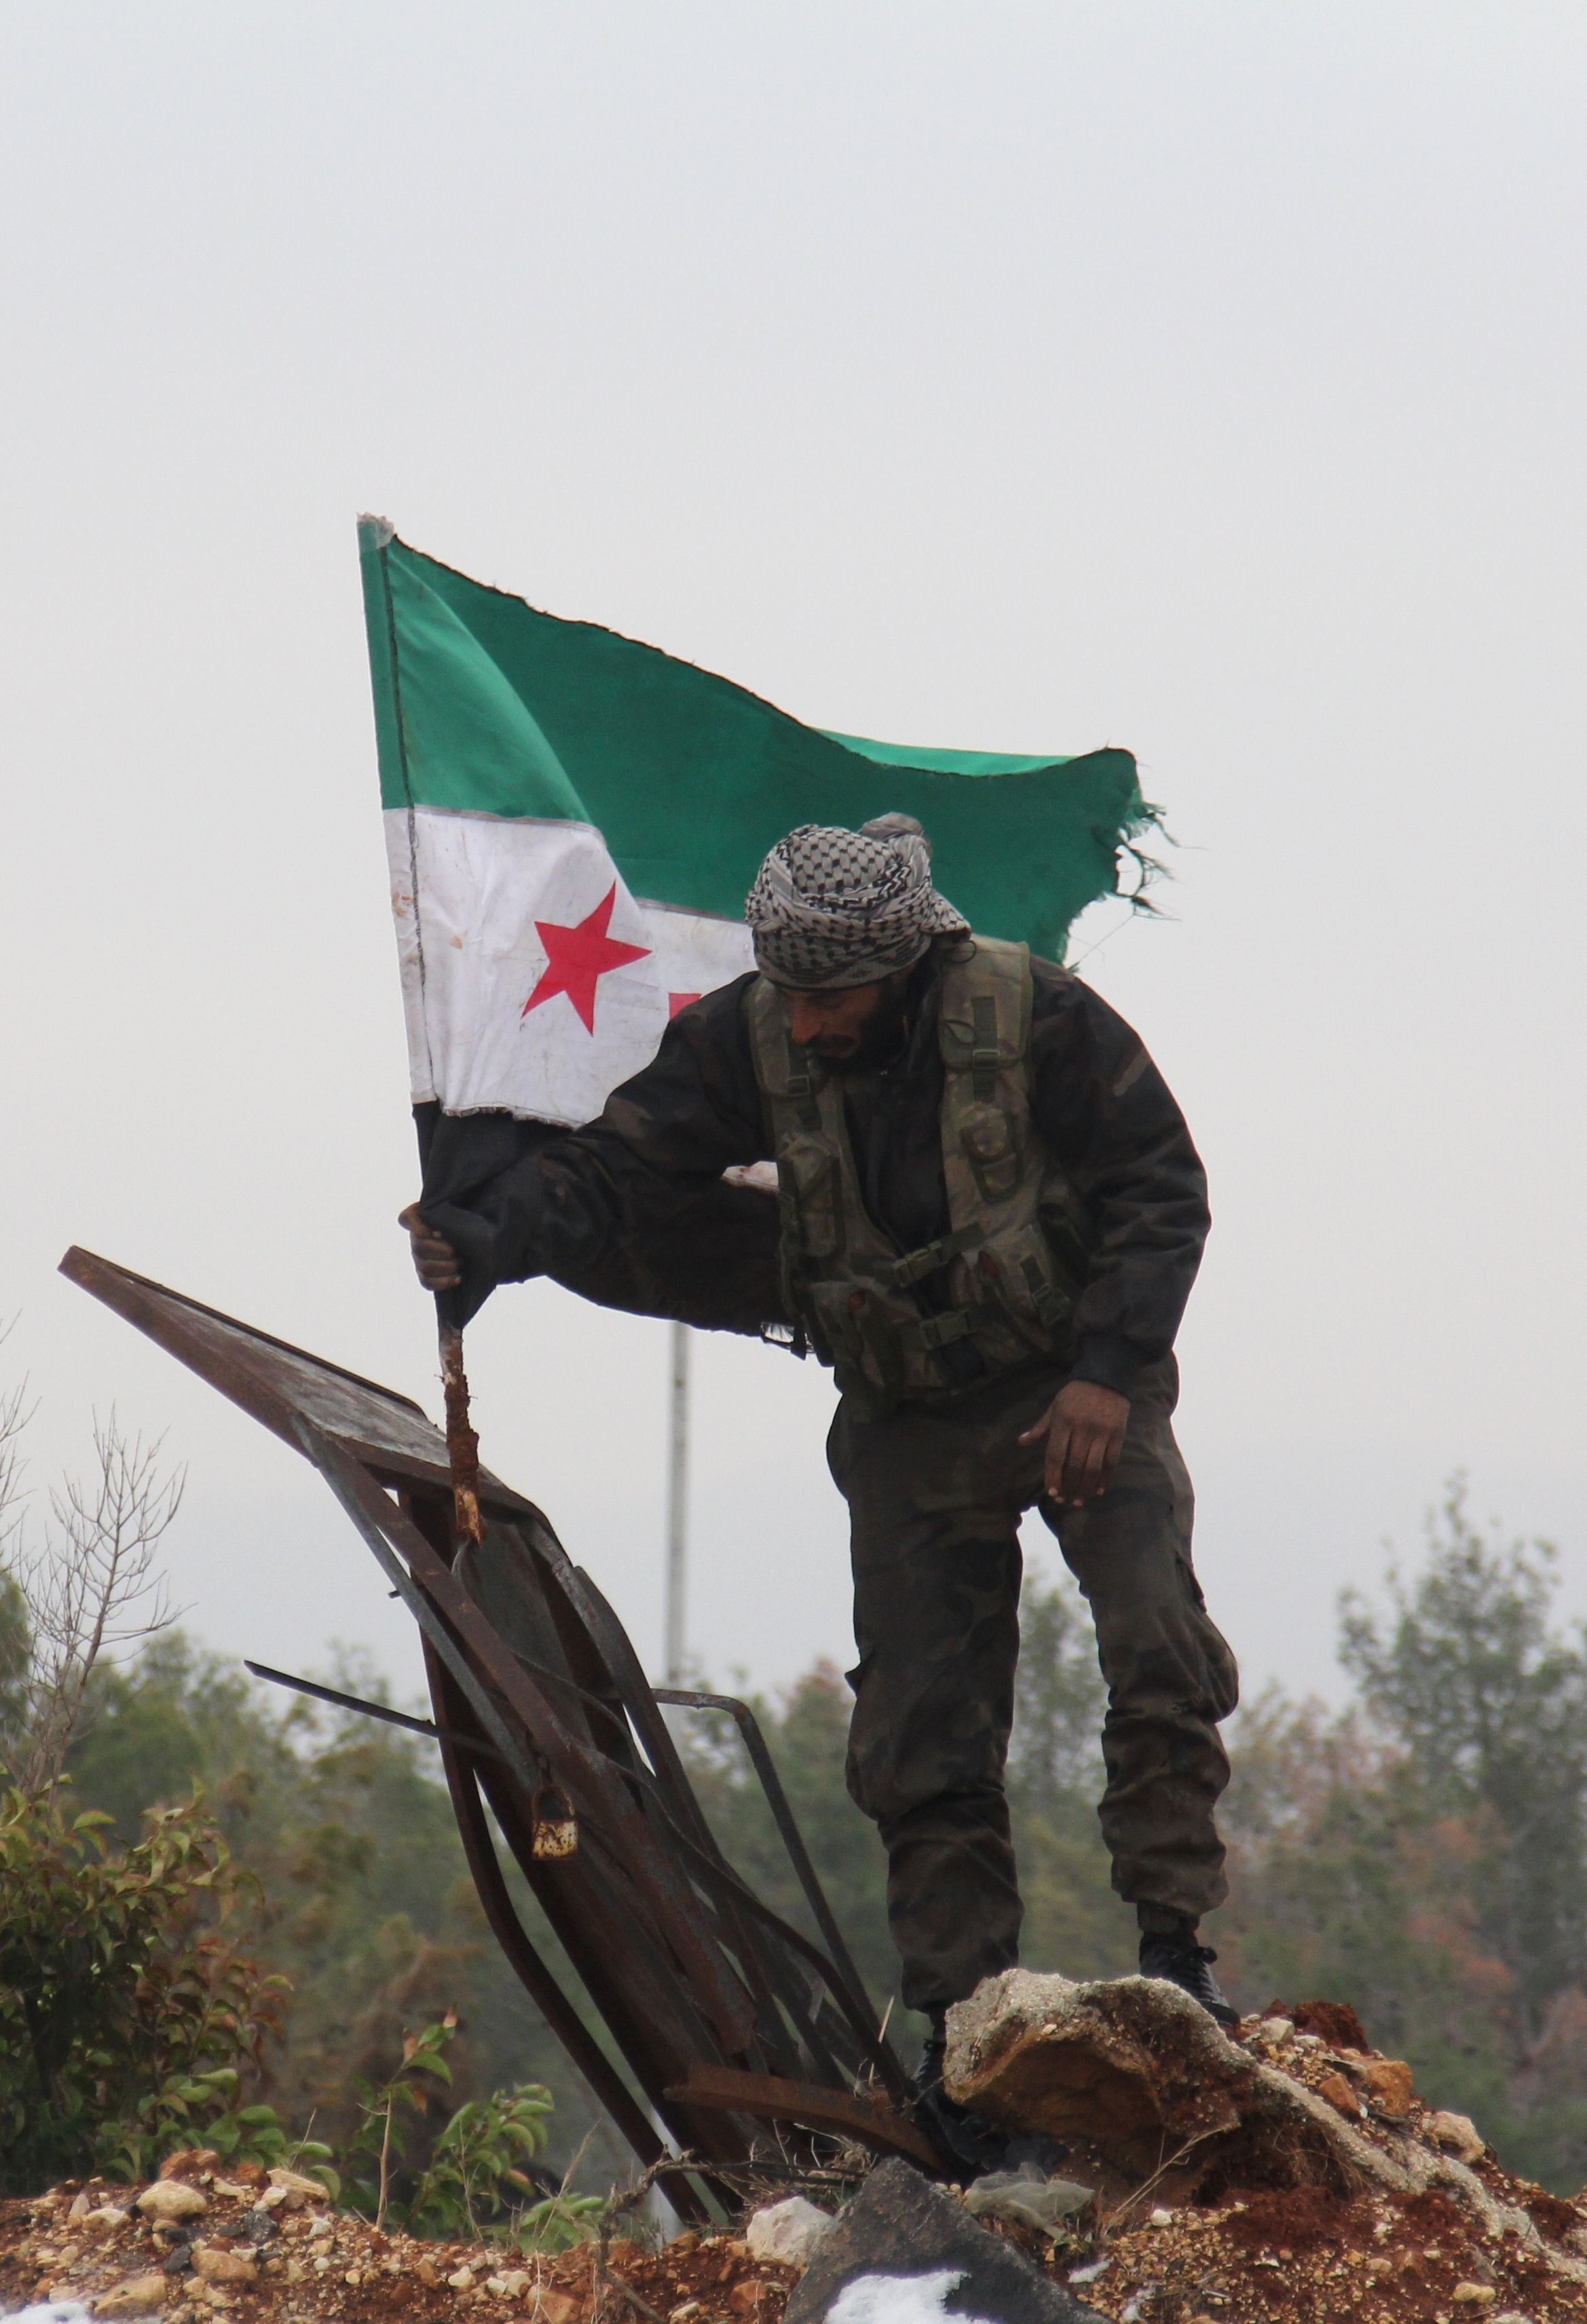 A Syrian rebel fighter places the old Syrian flag, now used by the opposition, in the remains of a damaged sign in a rebel-held territory near Rashidin, west of the embattled city, on December 22, 2016.  Convoys carried opposition fighters out of the last rebel pocket of Aleppo in the final phase of an evacuation clearing the way for Syria's army to retake the city. As part of the Aleppo evacuation deal, it was agreed that some residents would be allowed to leave Fuaa and Kafraya, two Shiite-majority villages in northwestern Syria that are under siege by the Sunni Muslim rebels.     / AFP / Omar haj kadour        (Photo credit should read OMAR HAJ KADOUR/AFP/Getty Images)